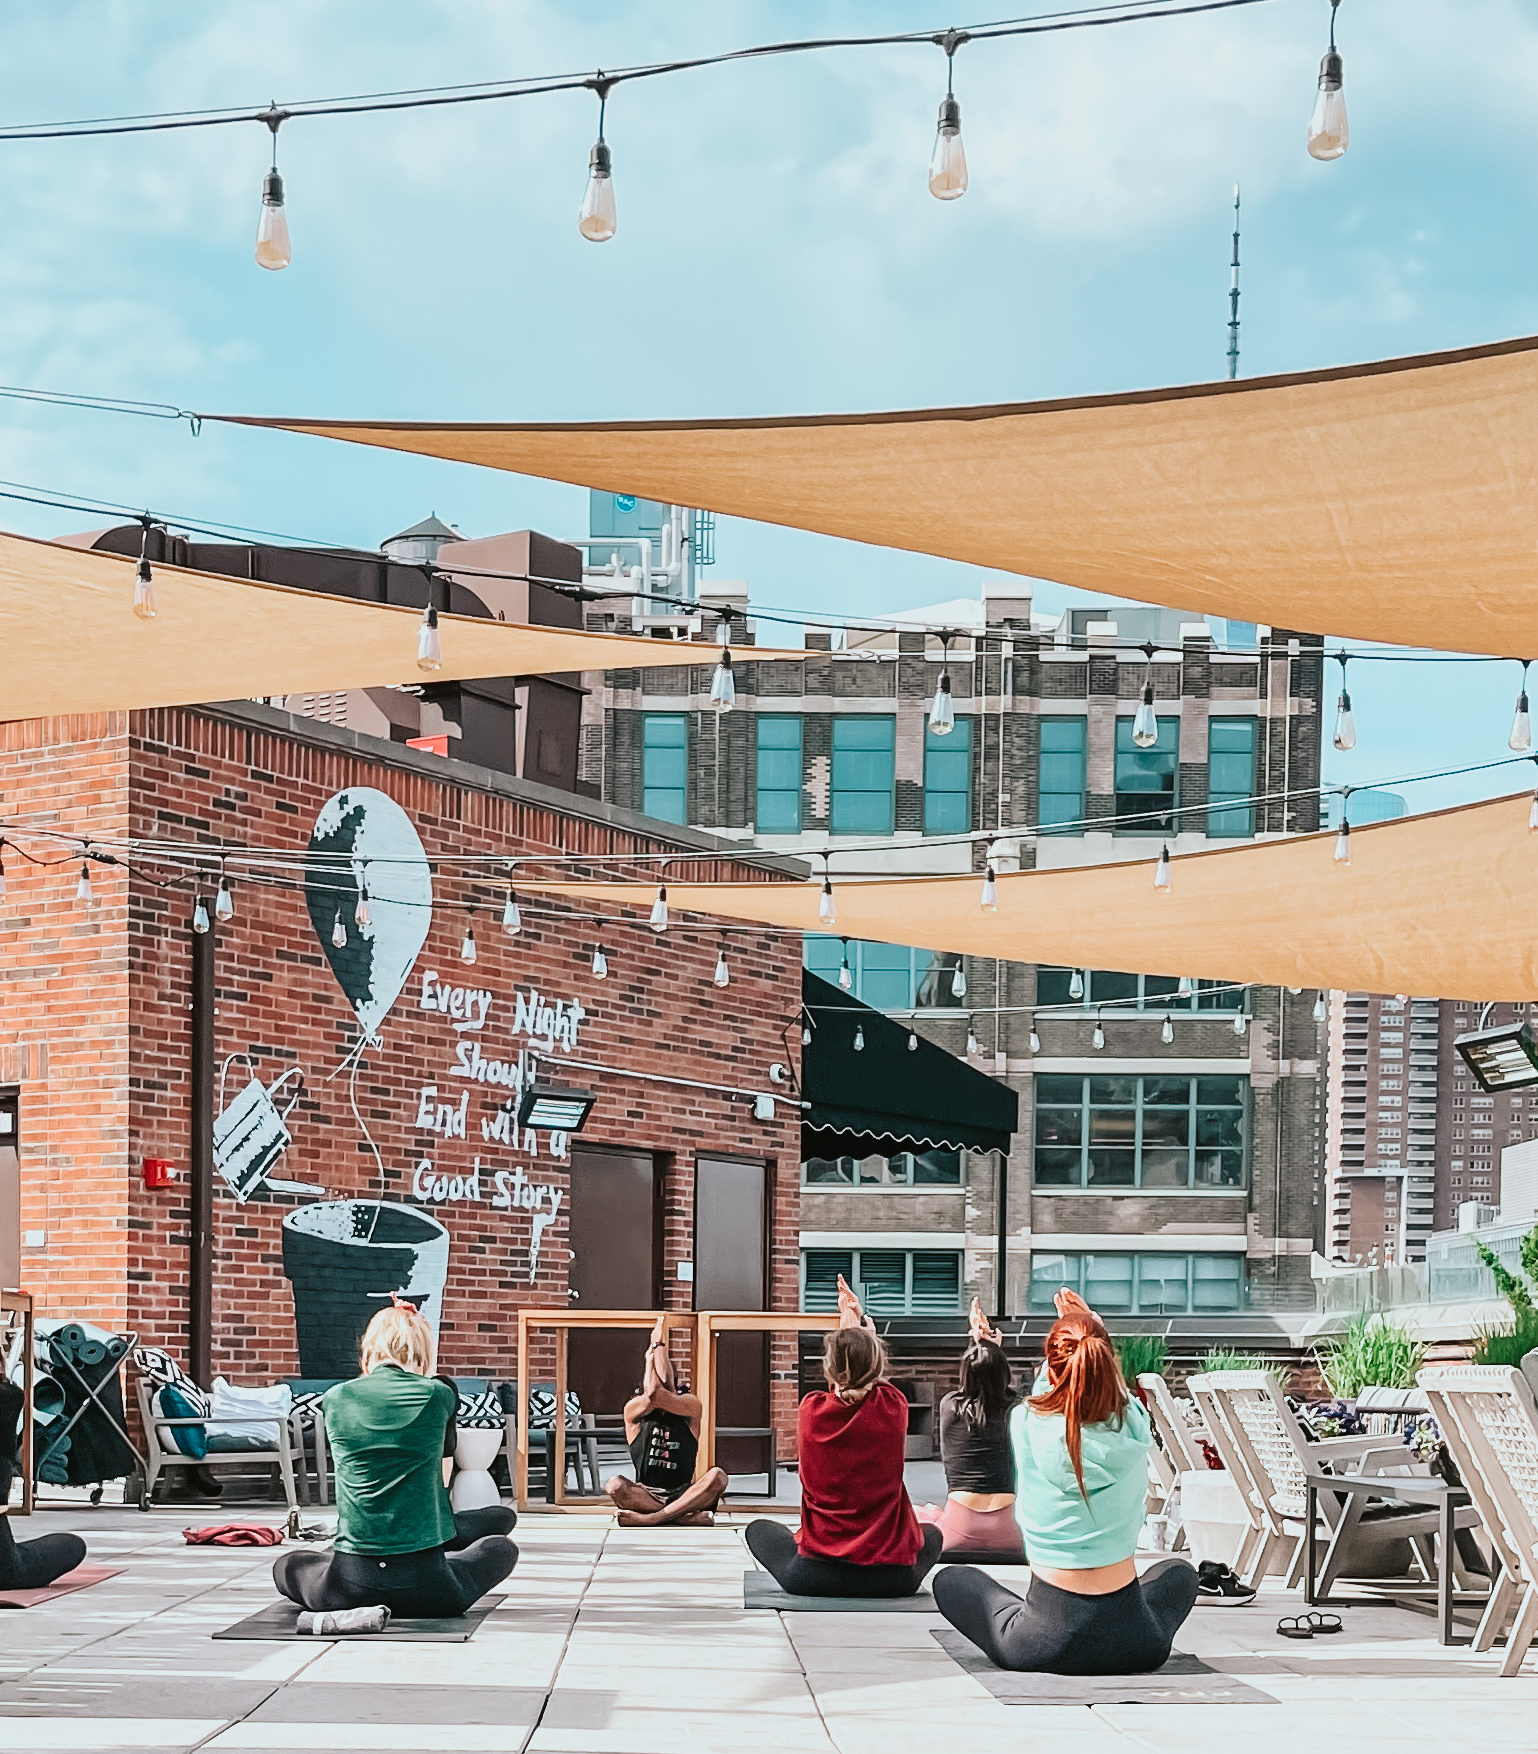 Arlo SoHo rooftop daytime with yellow fabric awnings and hanging string lights and several people seated on the floor on yoga mats stretching and background is a brick facade with a mural and a cityscape